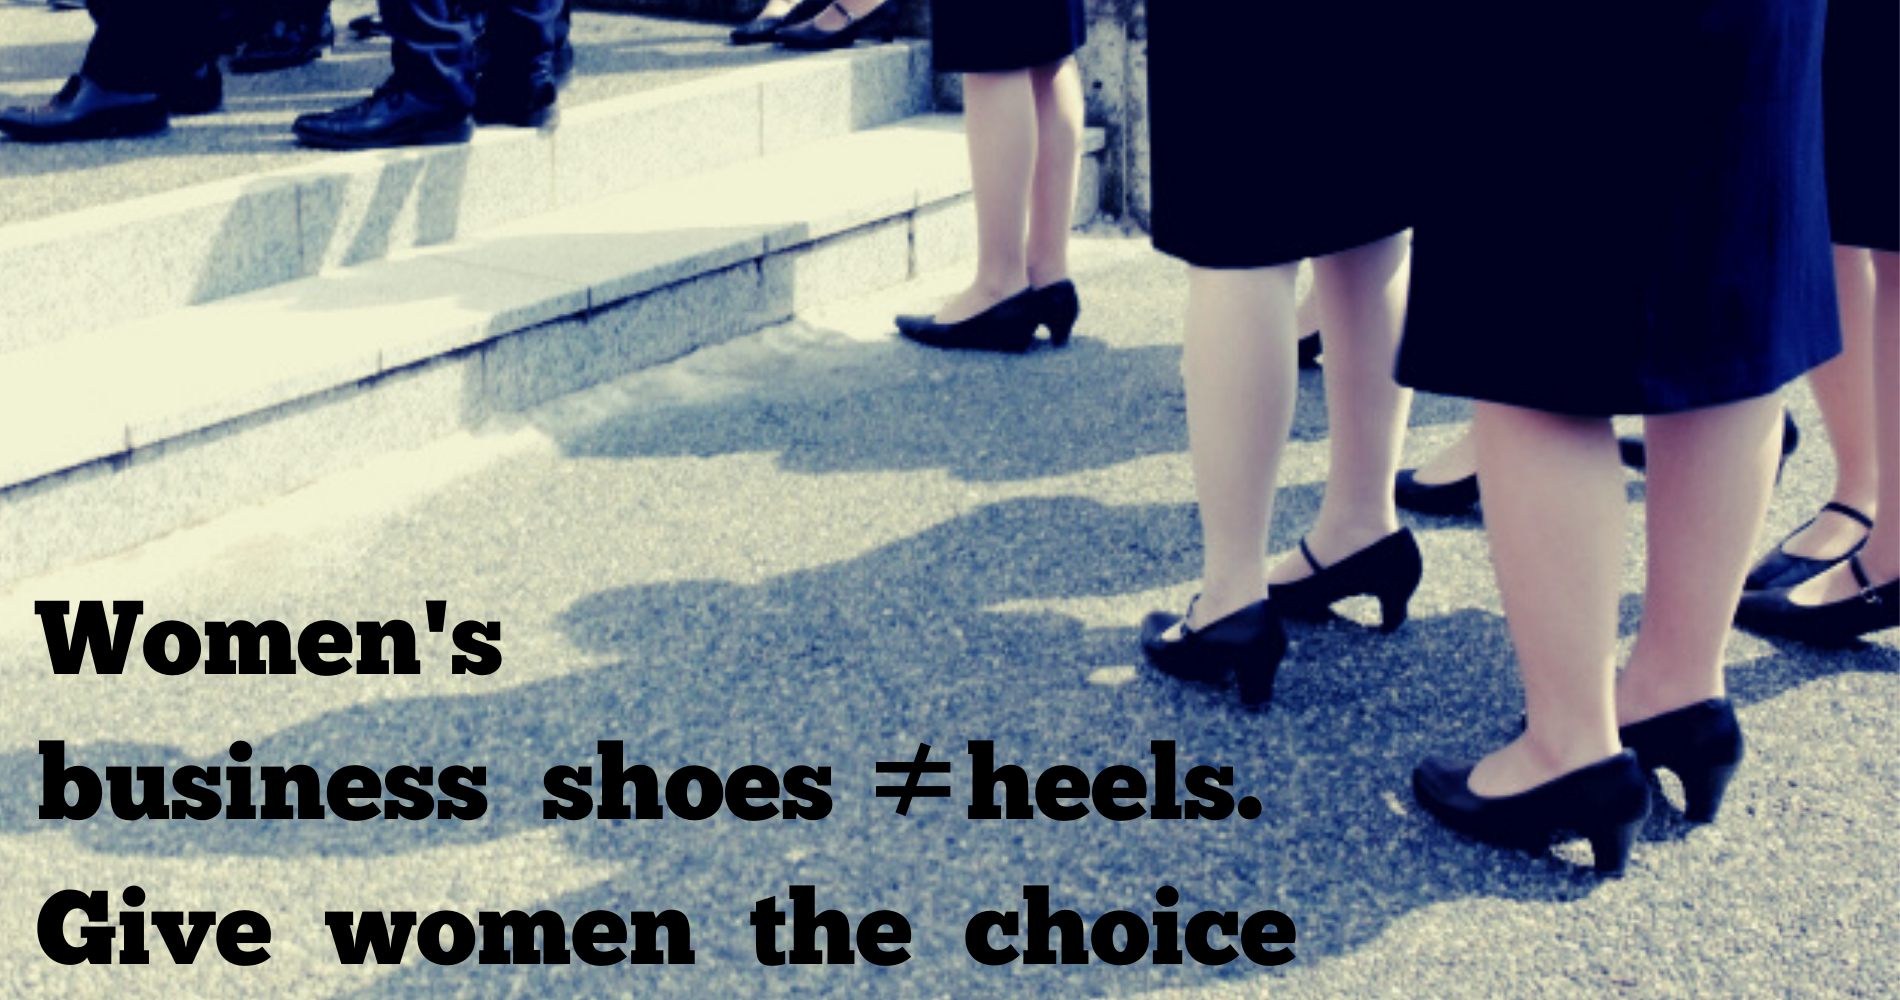 Women's business shoes ≠hells. Give wome'n the choice